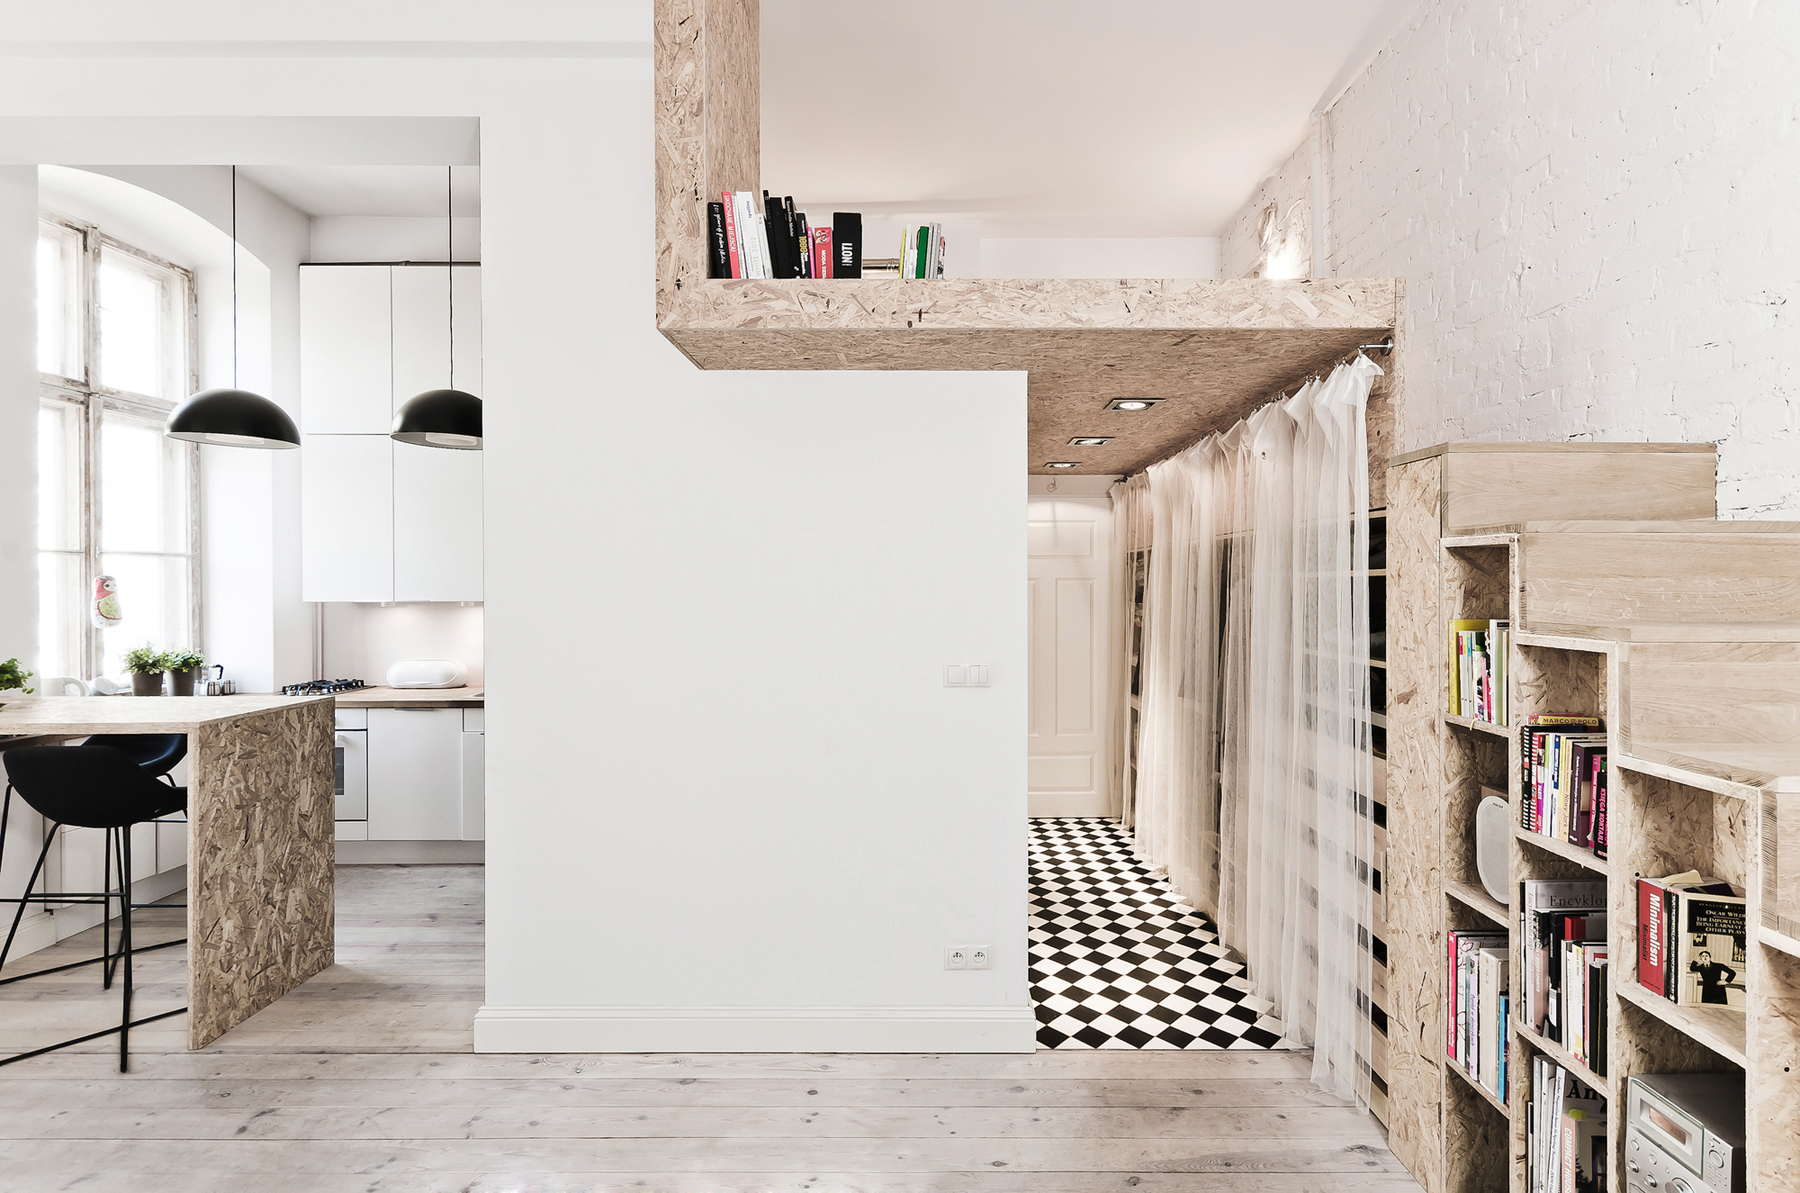 312 Square Foot Studio Loft Apartment In Poland